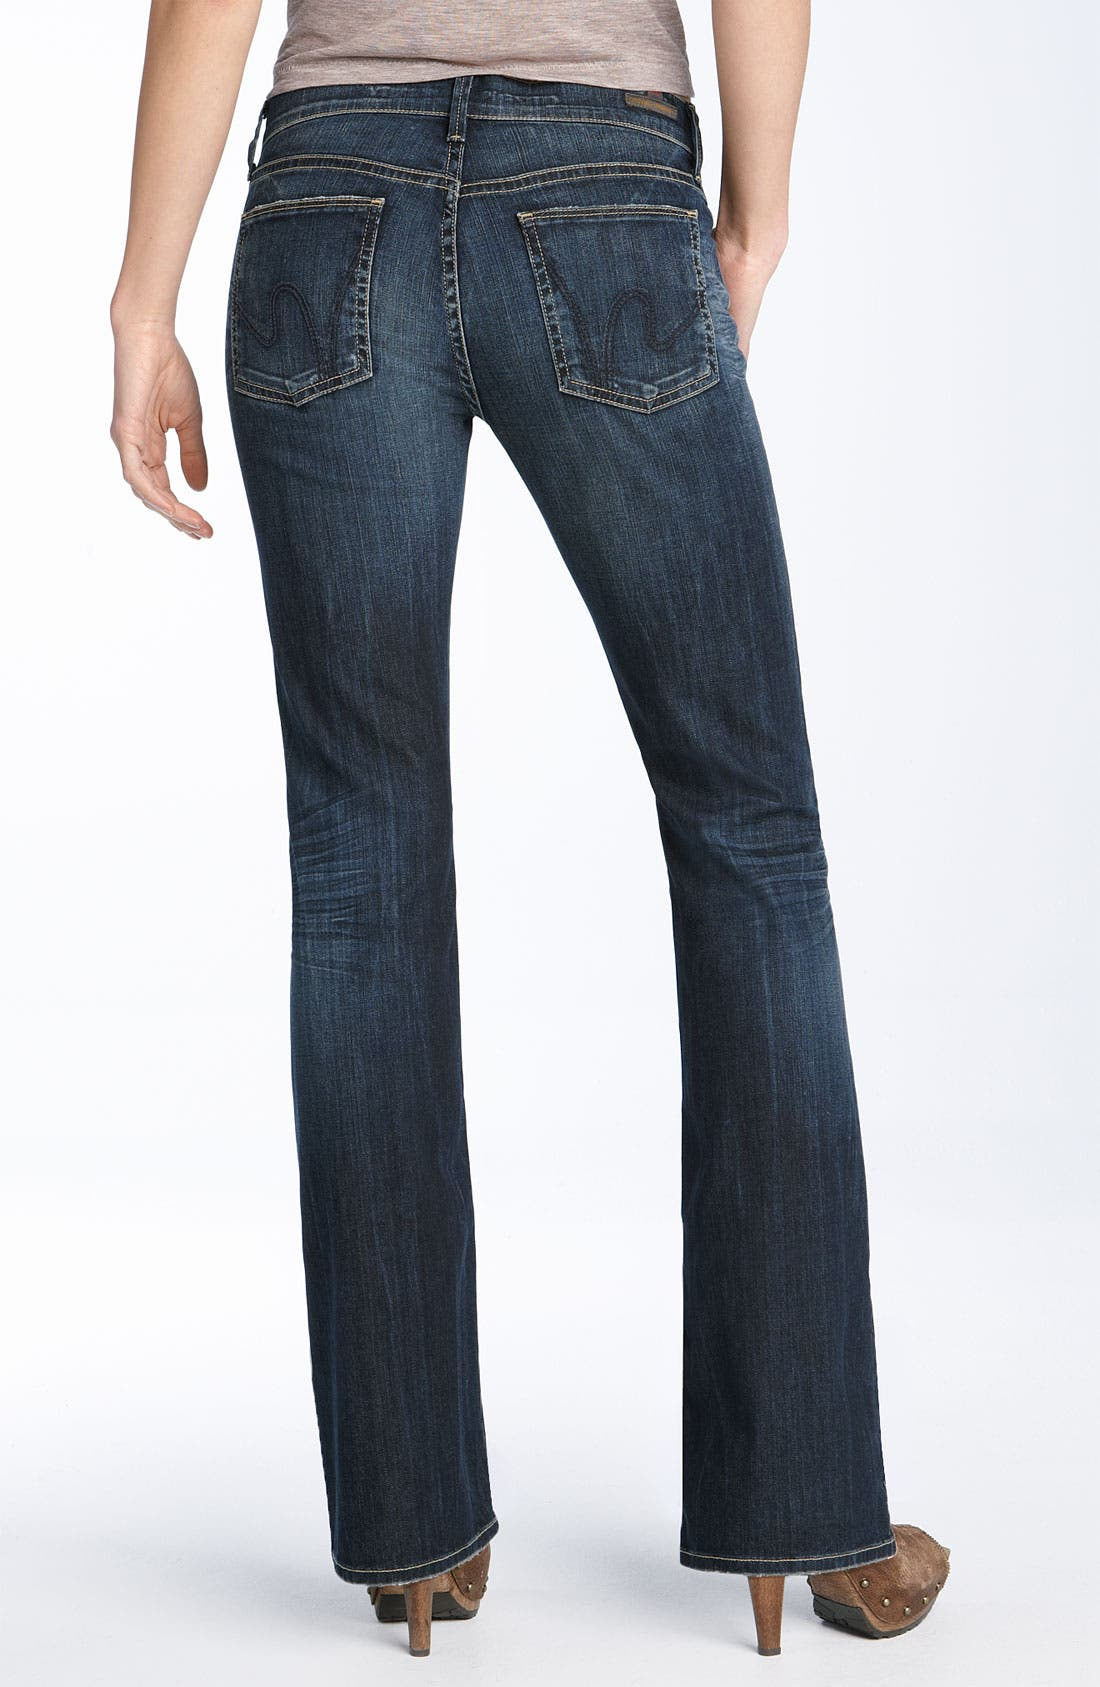 Main Image - Citizens of Humanity 'Dita' Bootcut Stretch Jeans (Saint Wash) (Petite)